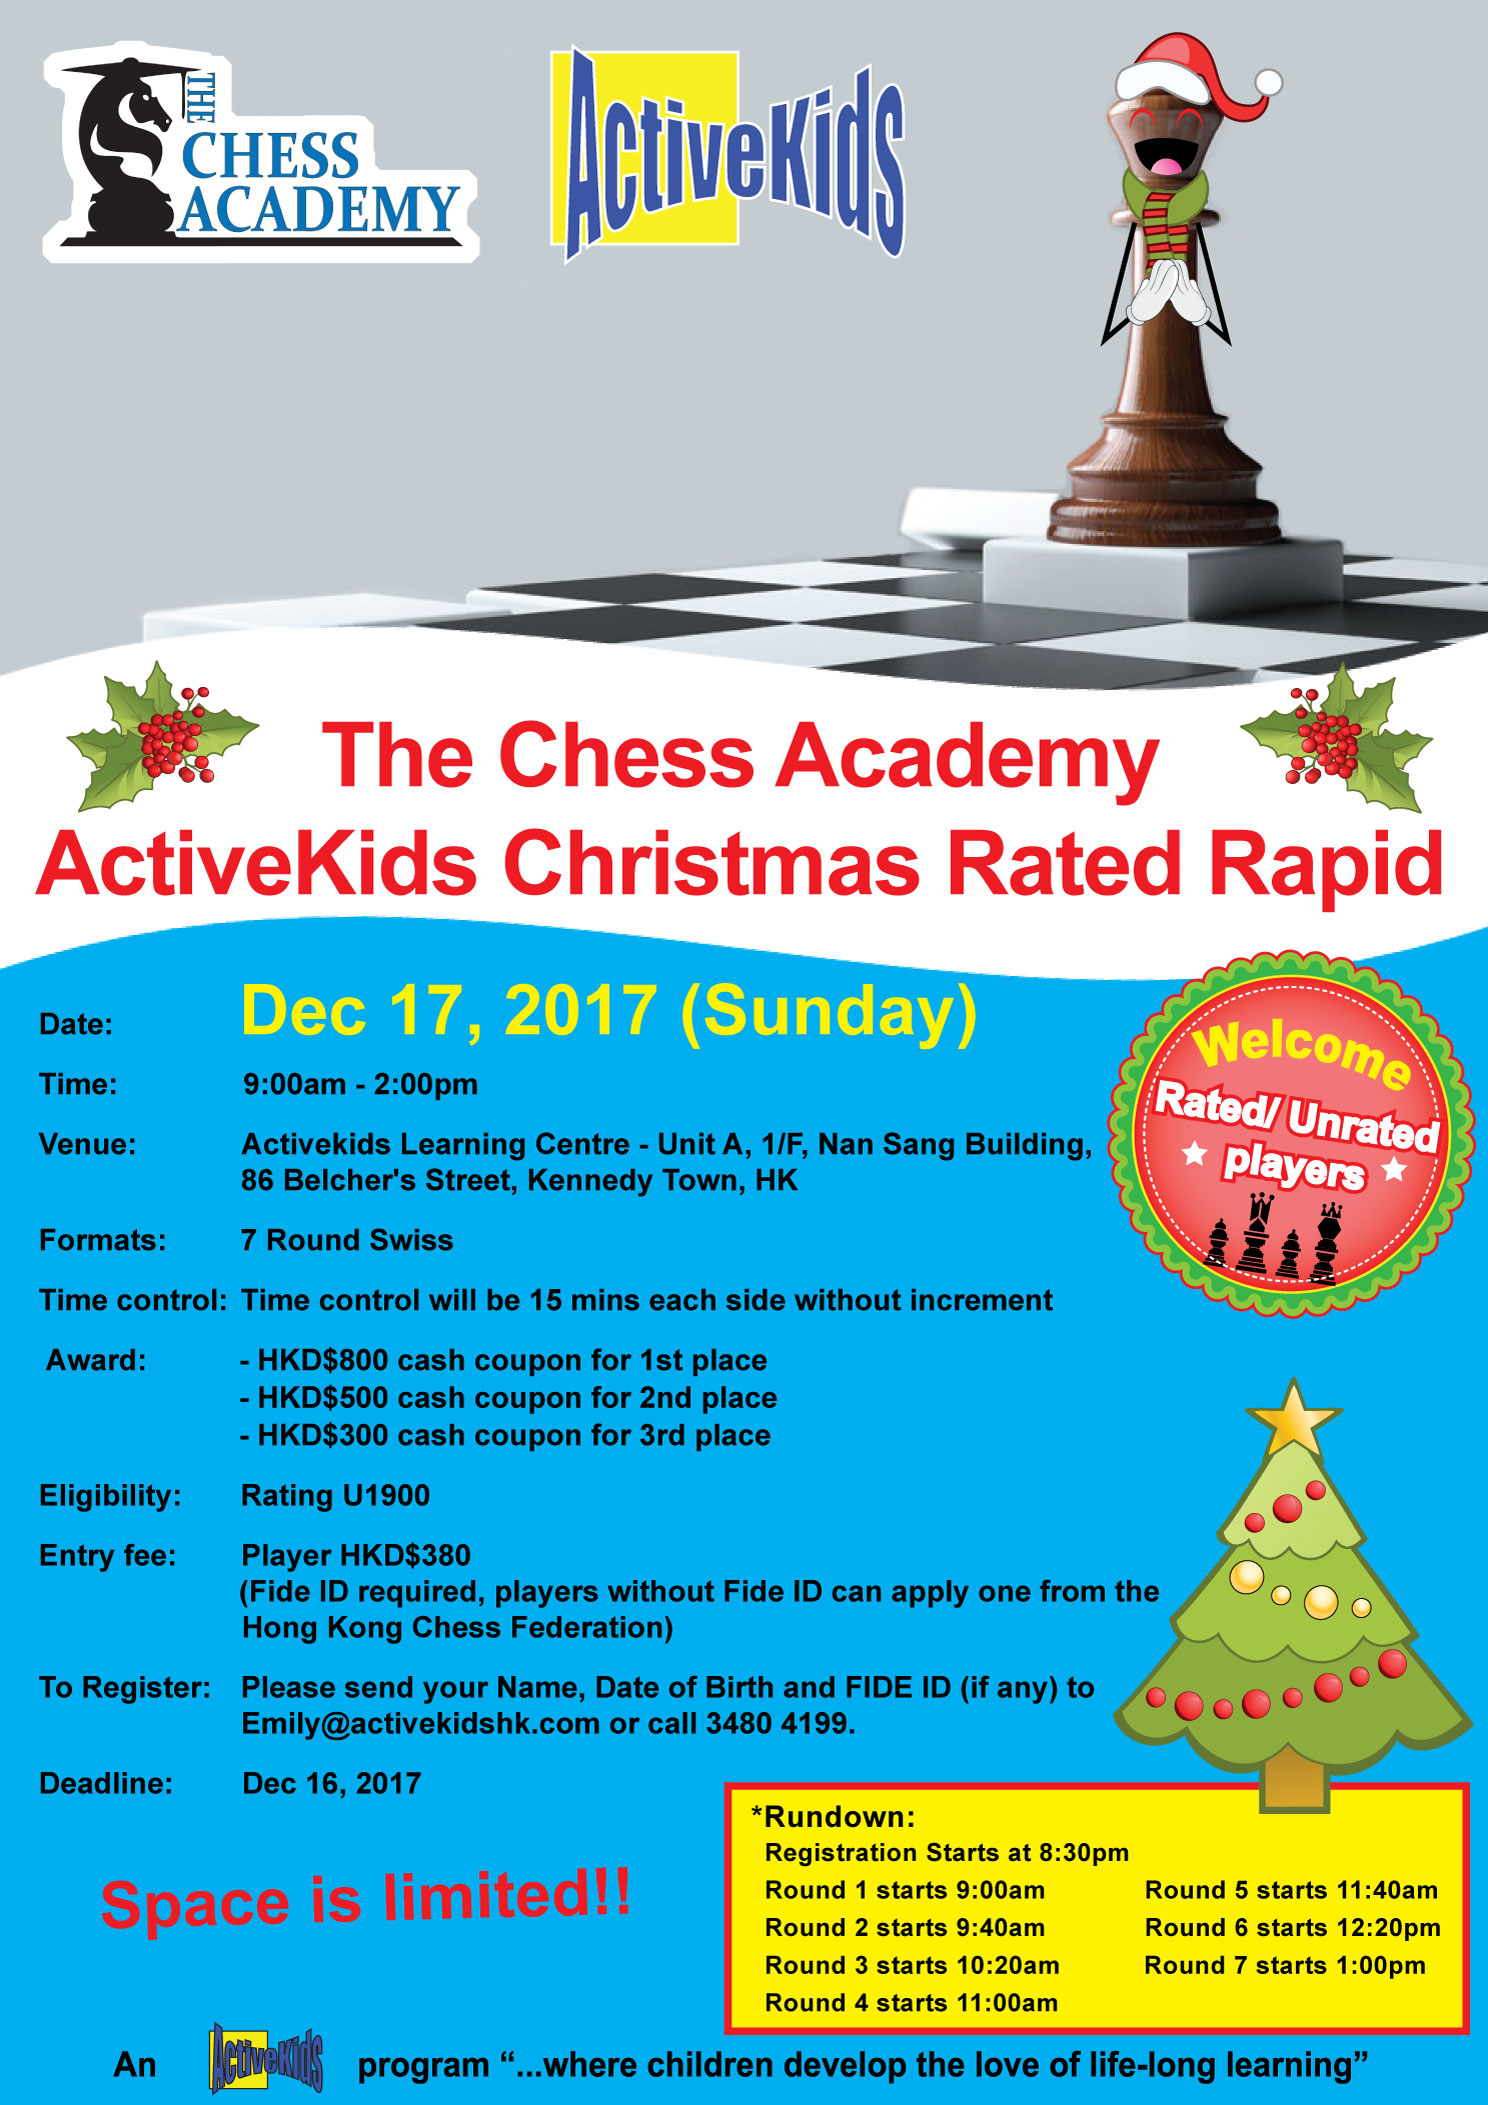 The Chess Academy ActiveKids Christmas Rated Rapid 2017